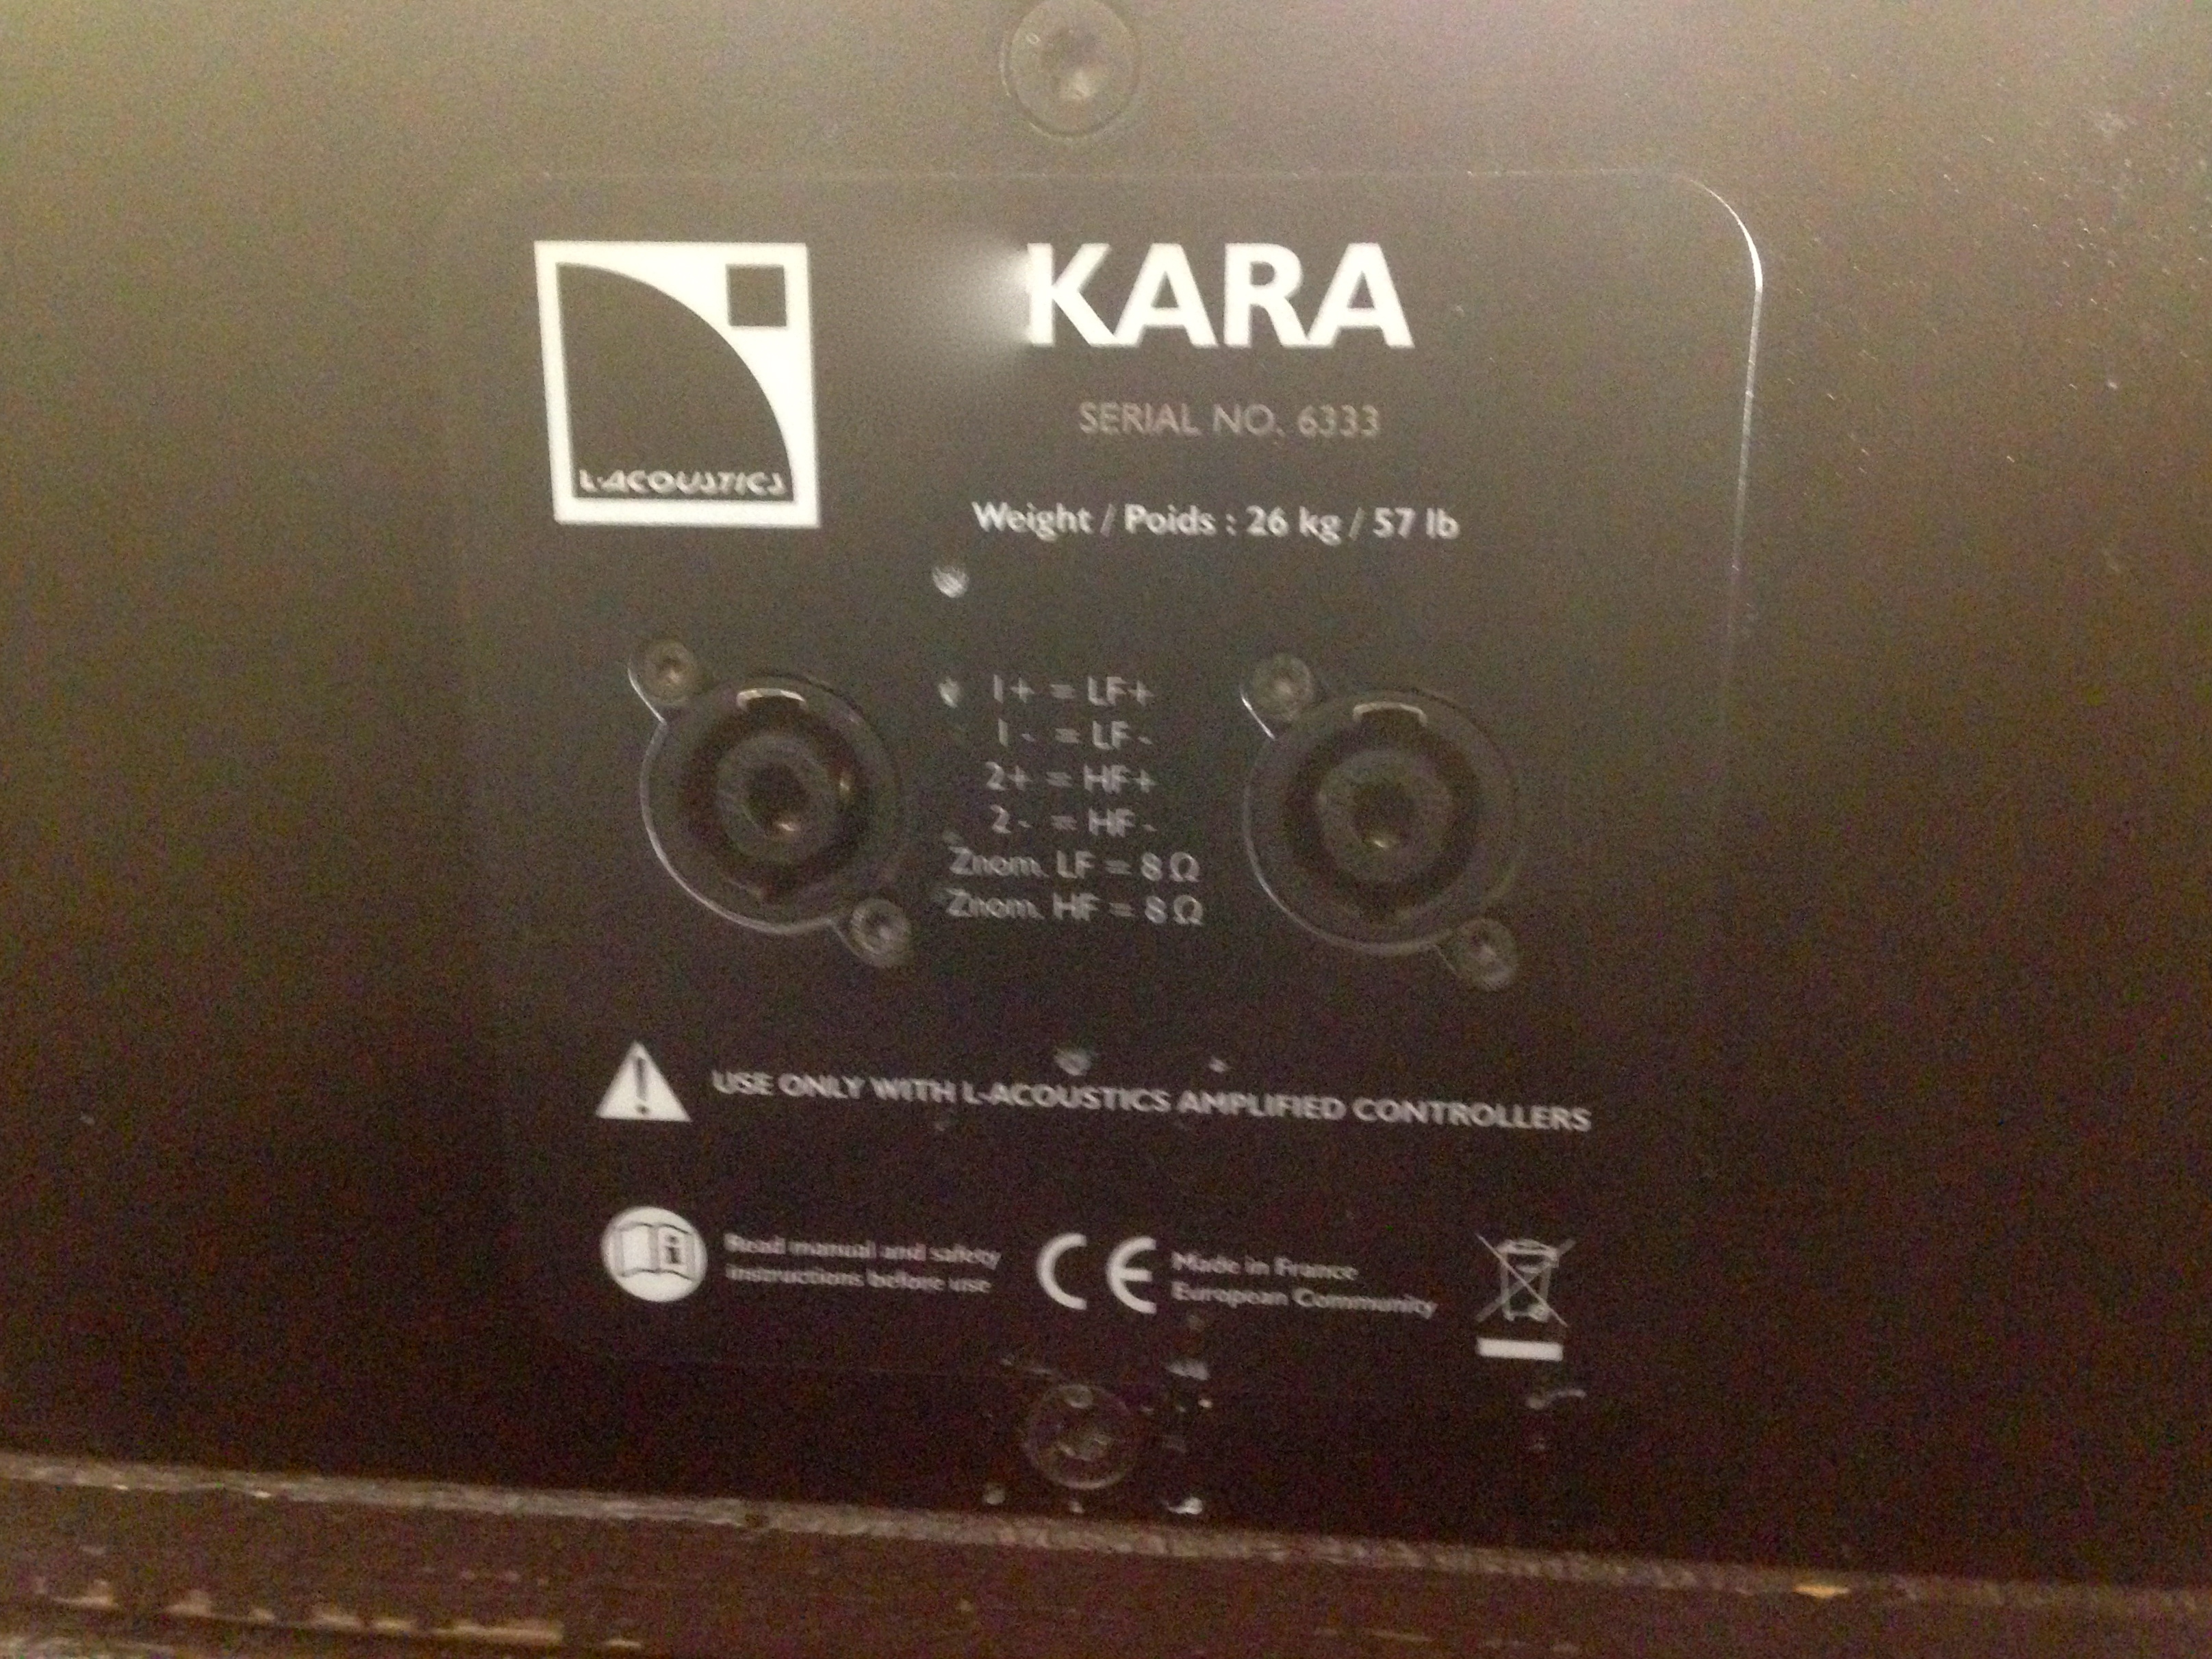 Home Guitar Studio Design L Acoustics Kara Image 784196 Audiofanzine